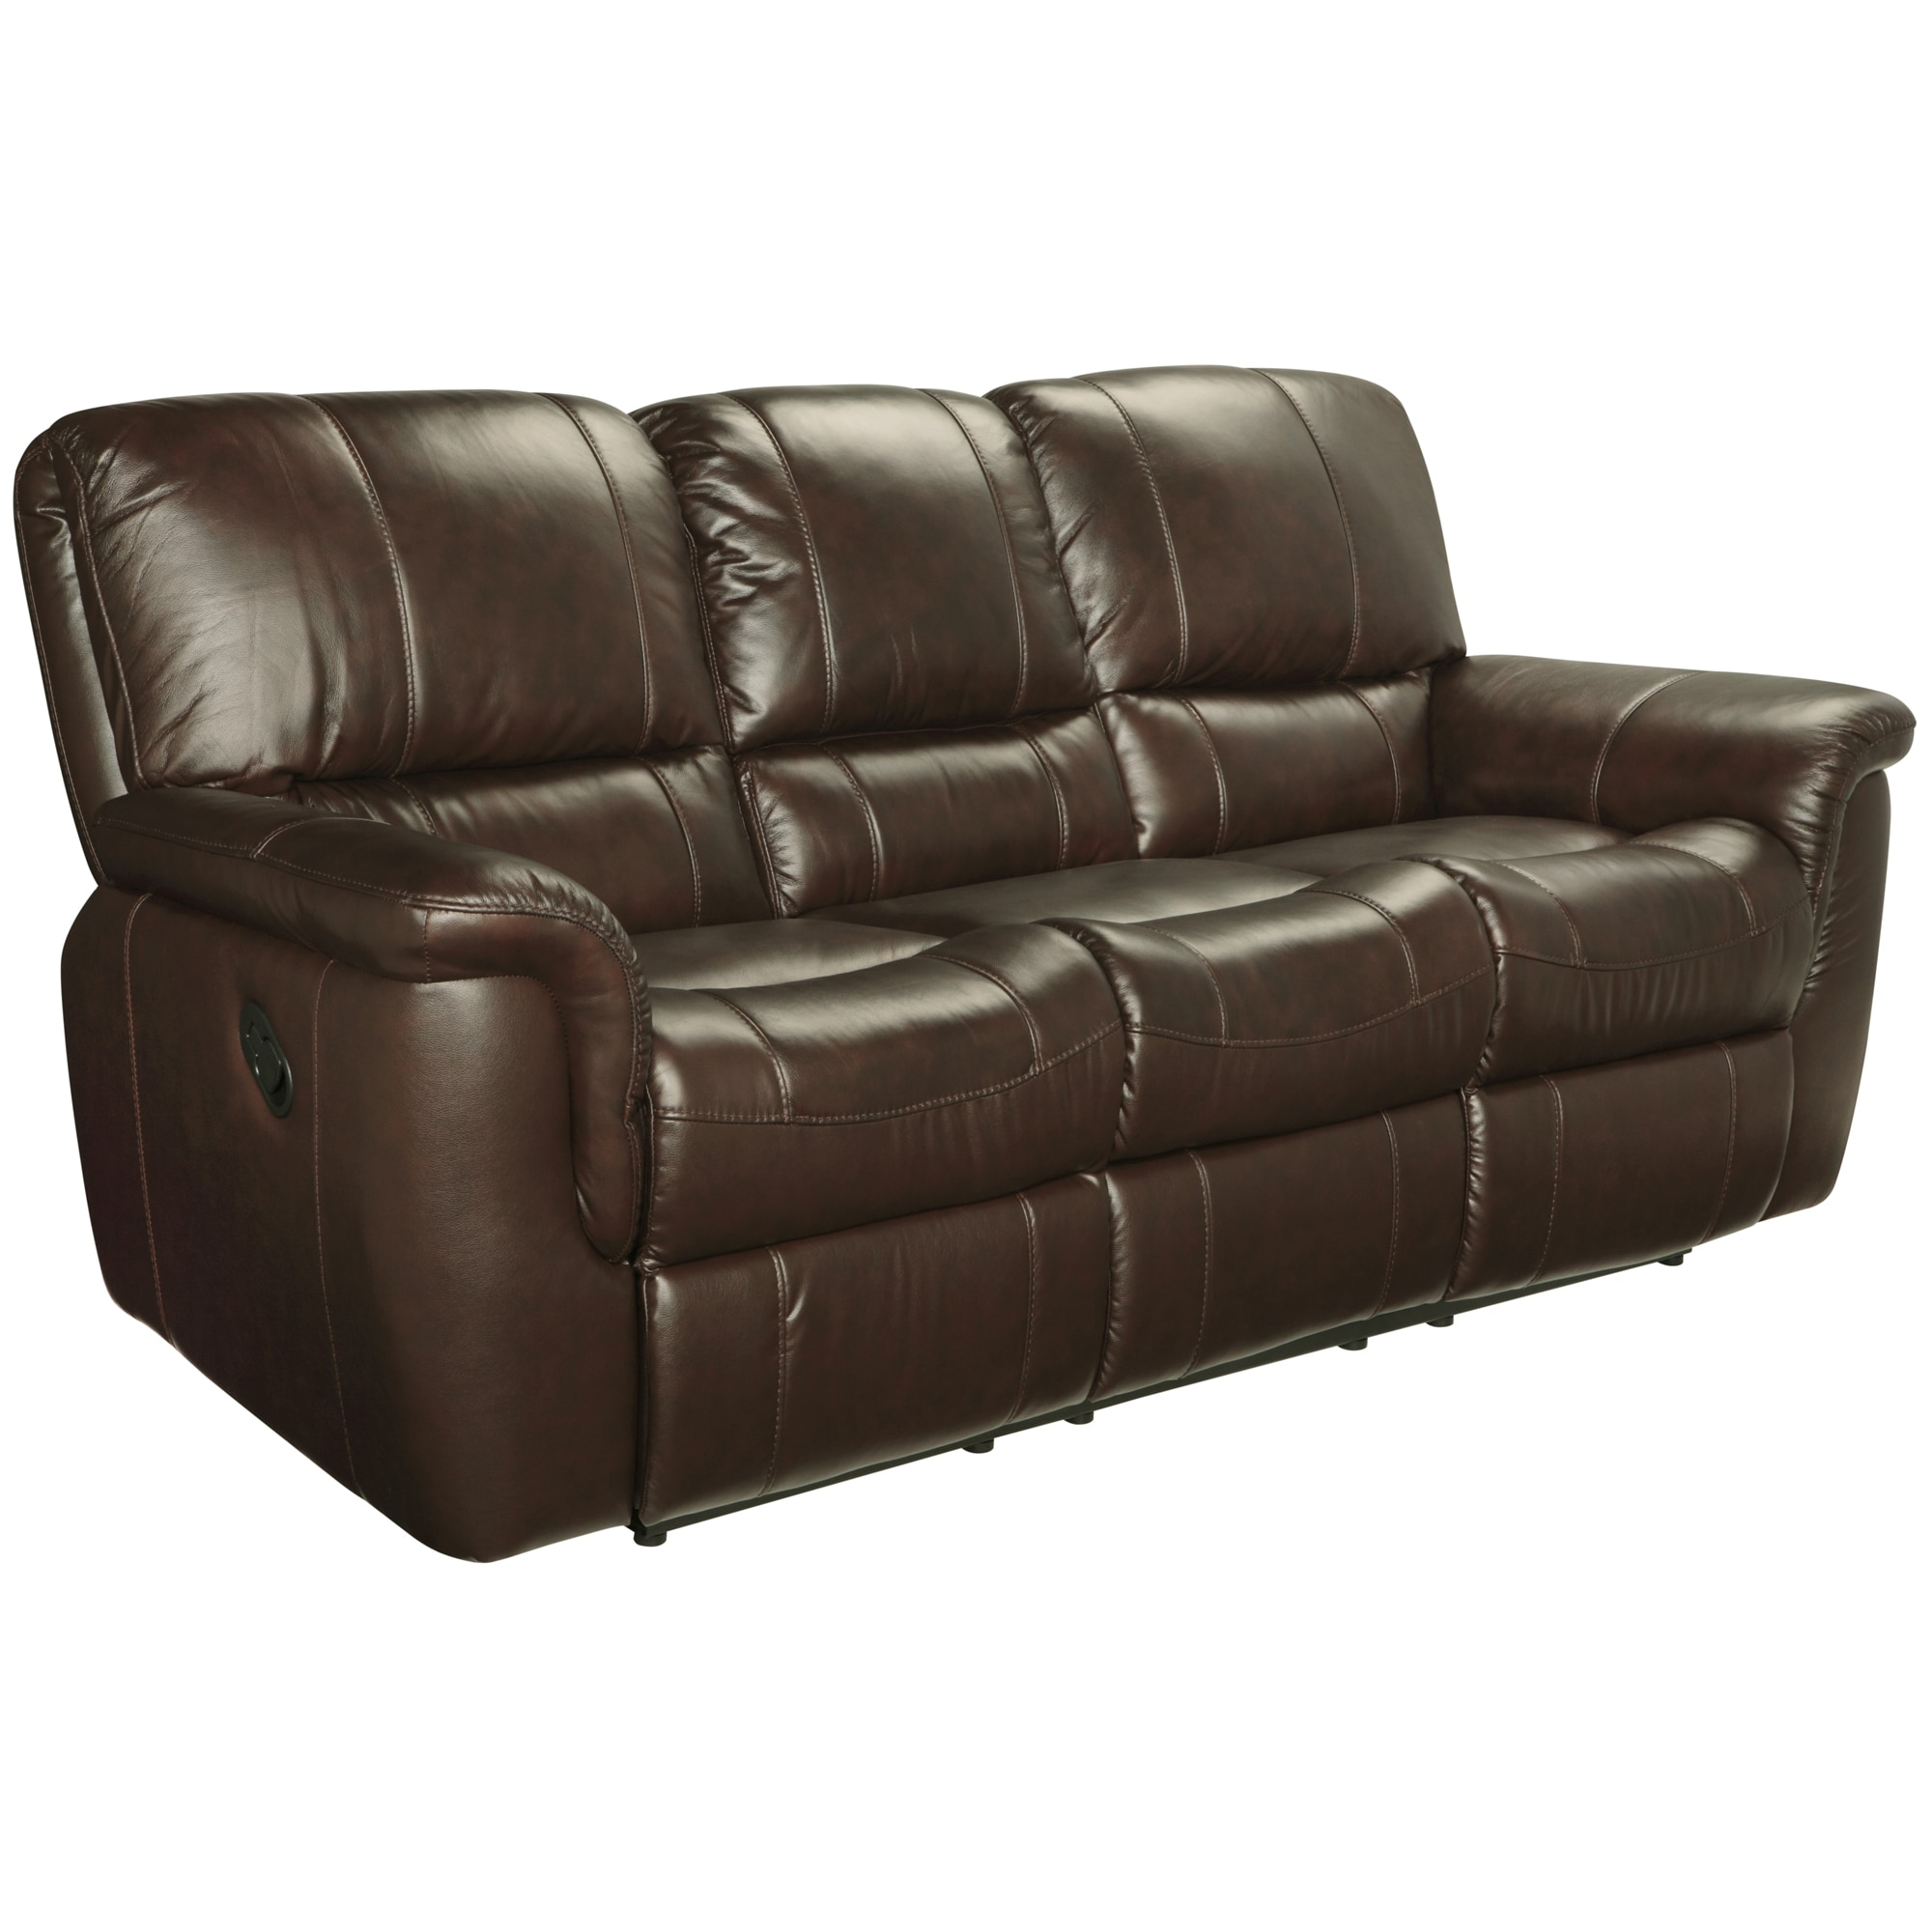 Ethan Chestnut Brown Leather Reclining Sofa Loveseat And Recliner  ~ Brown Leather Reclining Sofa